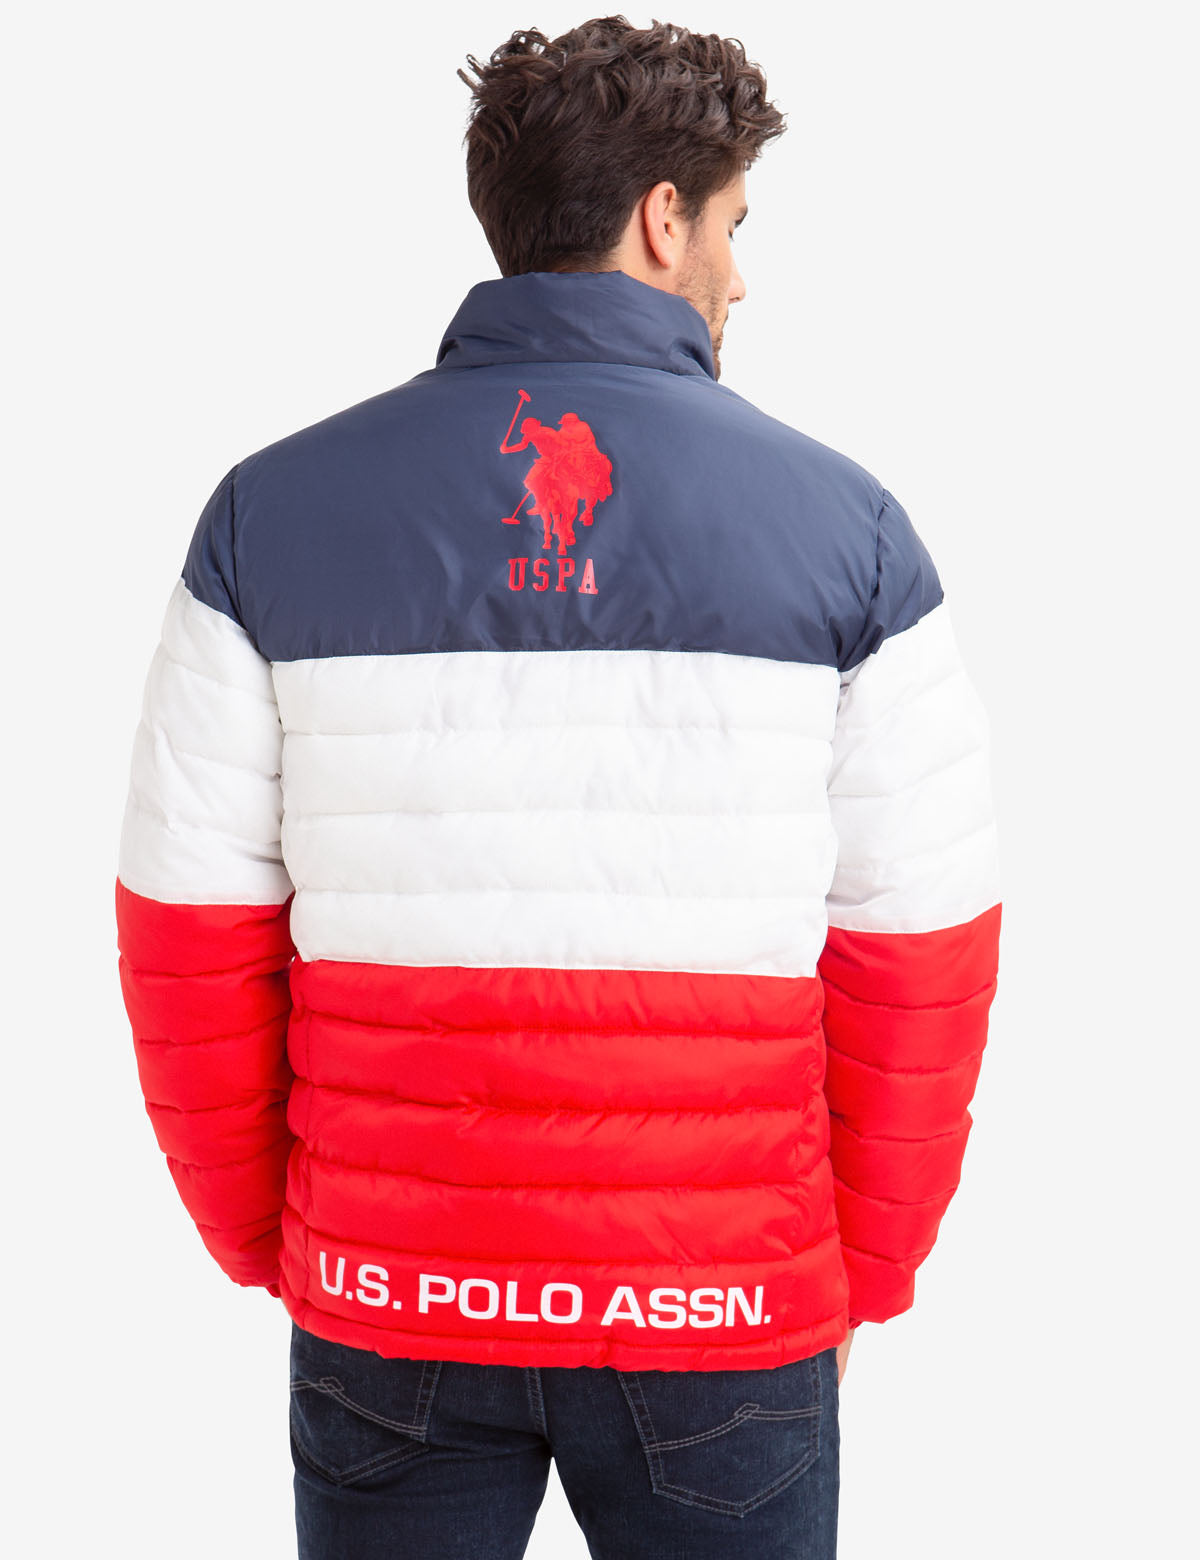 U.S Polo Assn Mens Color Block Puffer Jacket